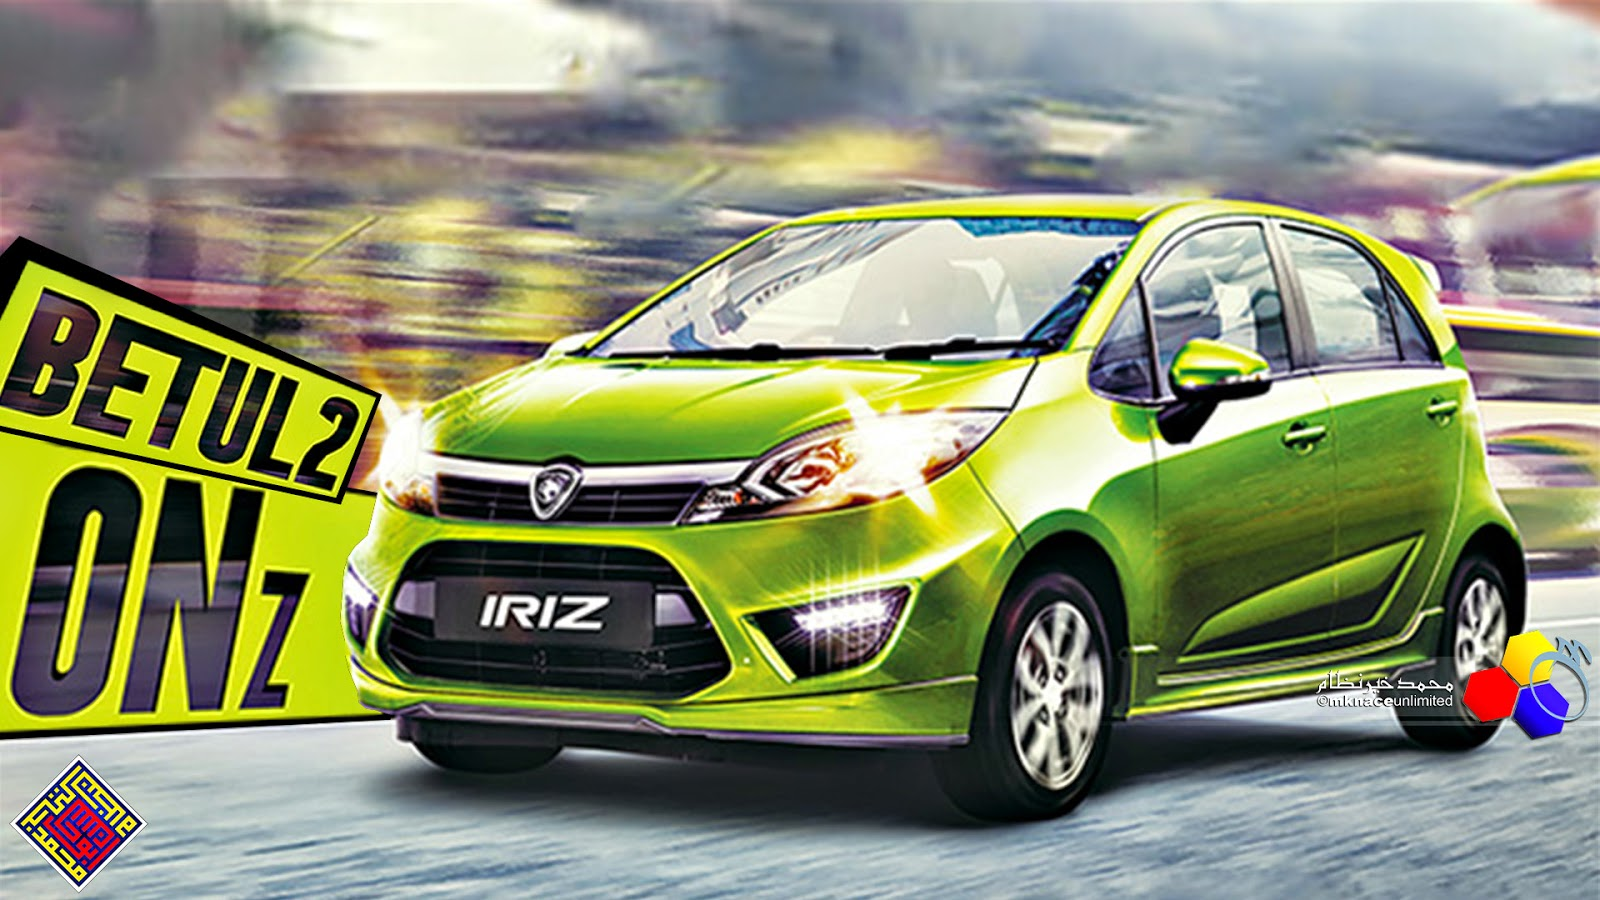 The All New Proton Iriz Mknace Unlimited Colours Of Life Tcash Puasa Headlamp Zoom